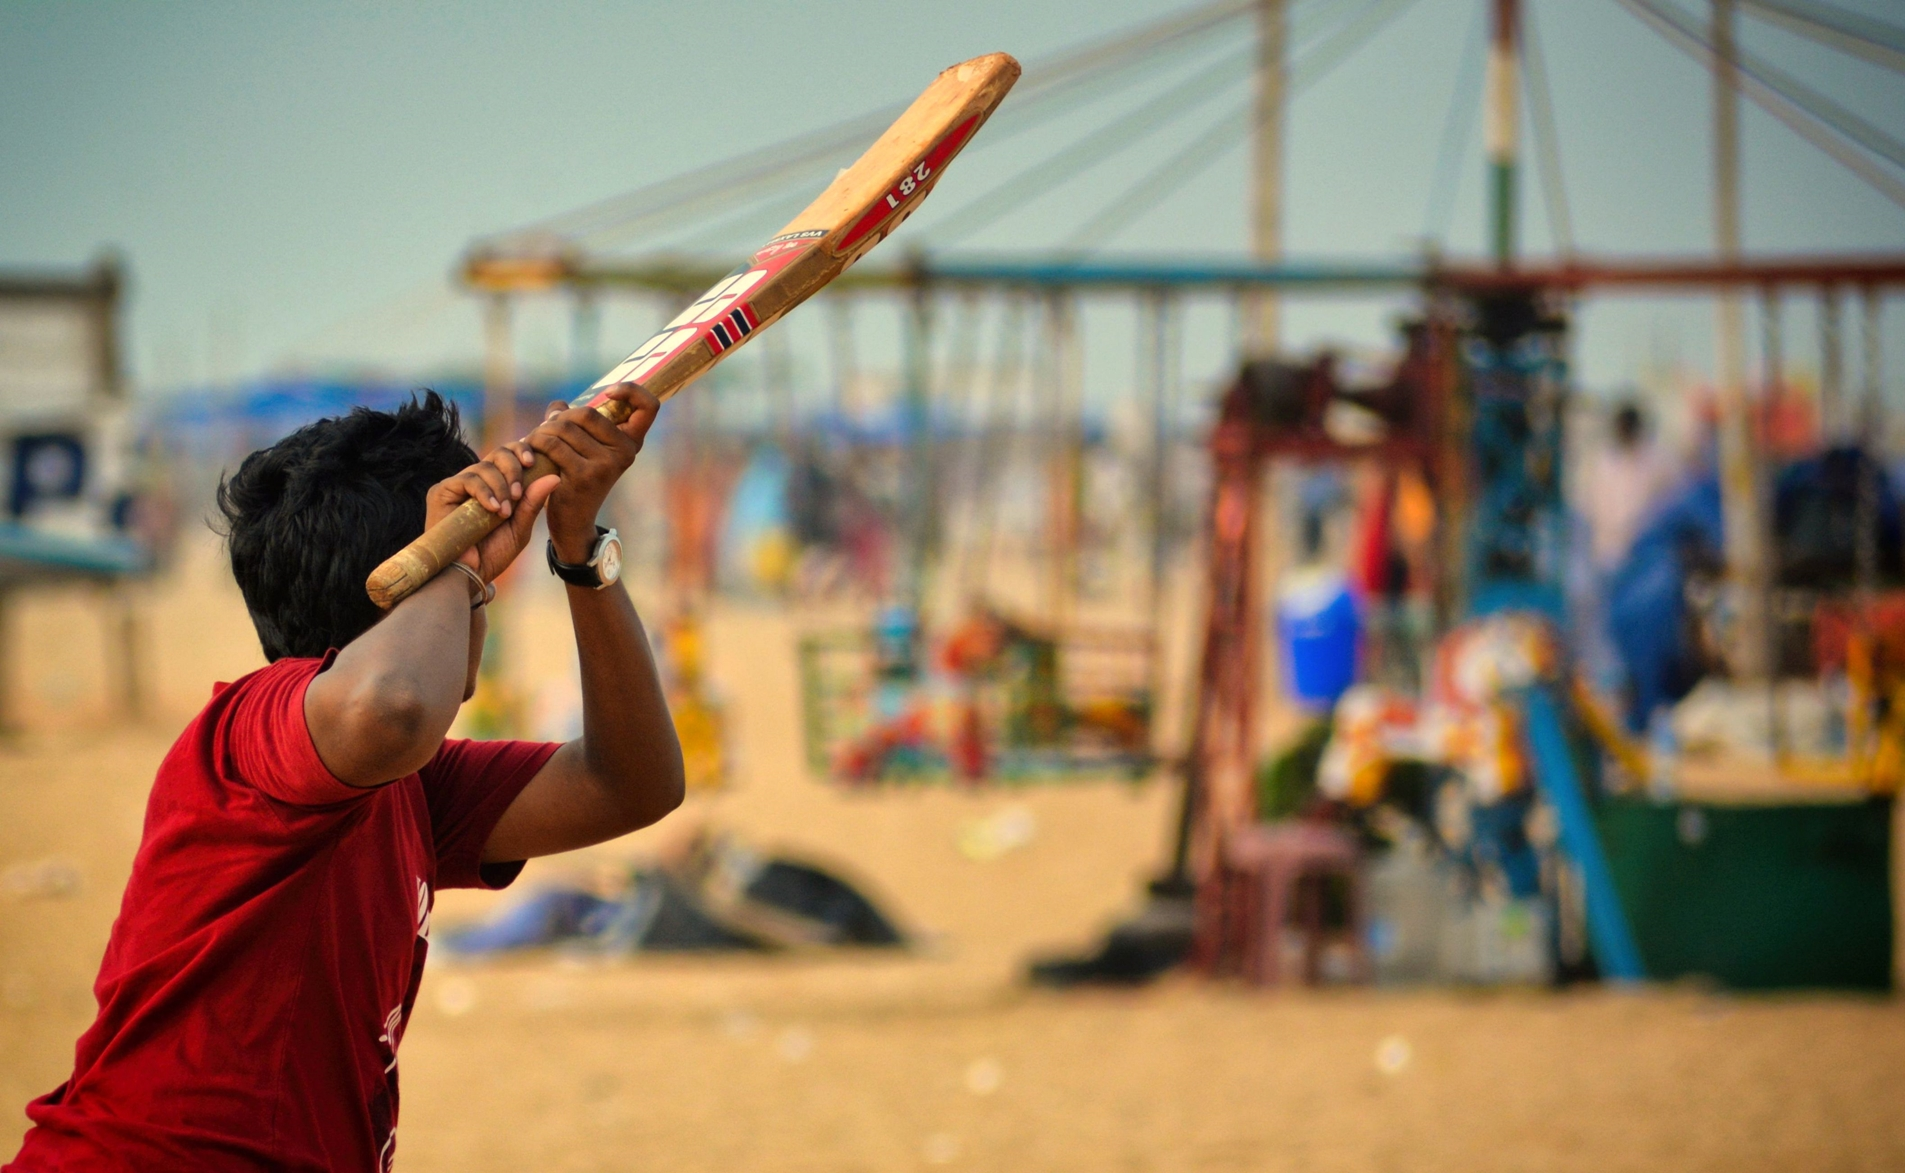 This picture showcases a teenager enjoying his summer by playing beach cricket